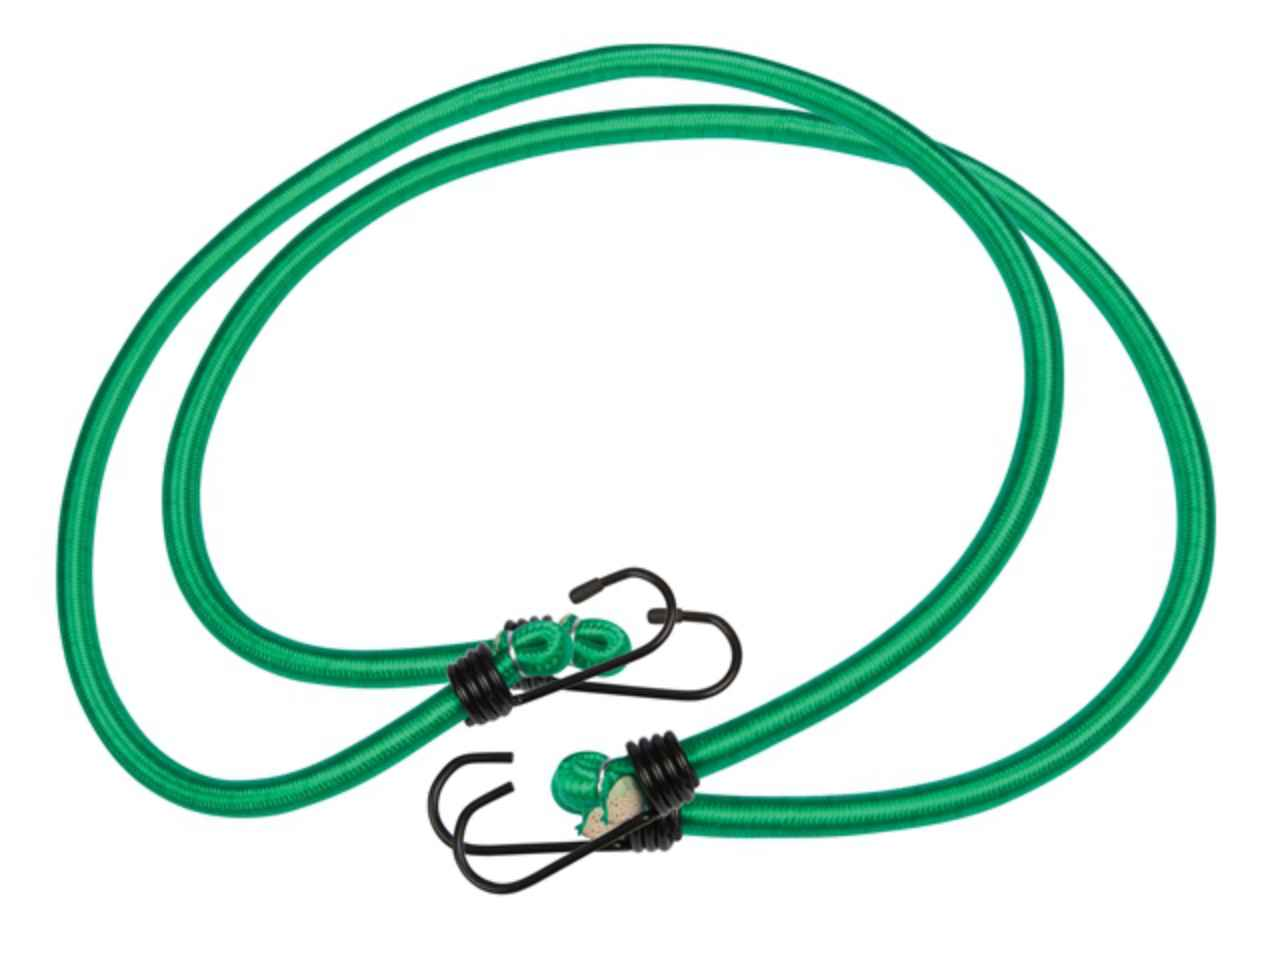 BlueSpot 45443 45444 45445 BUNGEE CORDS with SNAP CLIPS 60 90 or 120cm